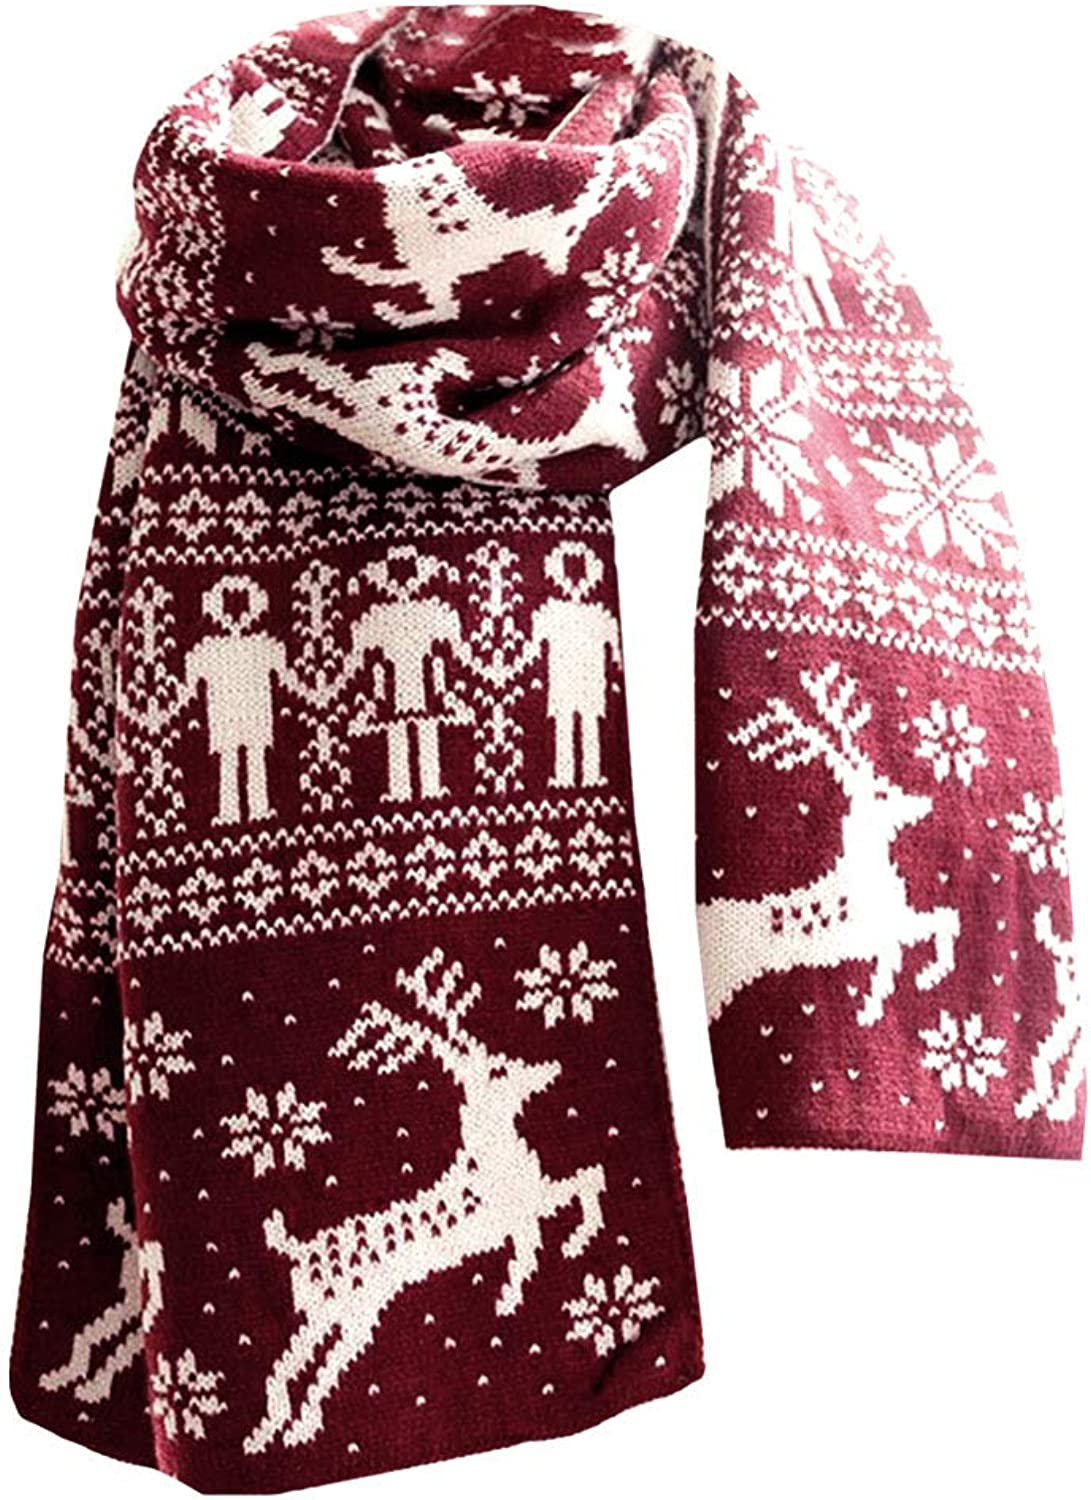 Rebecca Women Knitting Scarf Christmas Reindeer Snow Flake Shawl Blanket